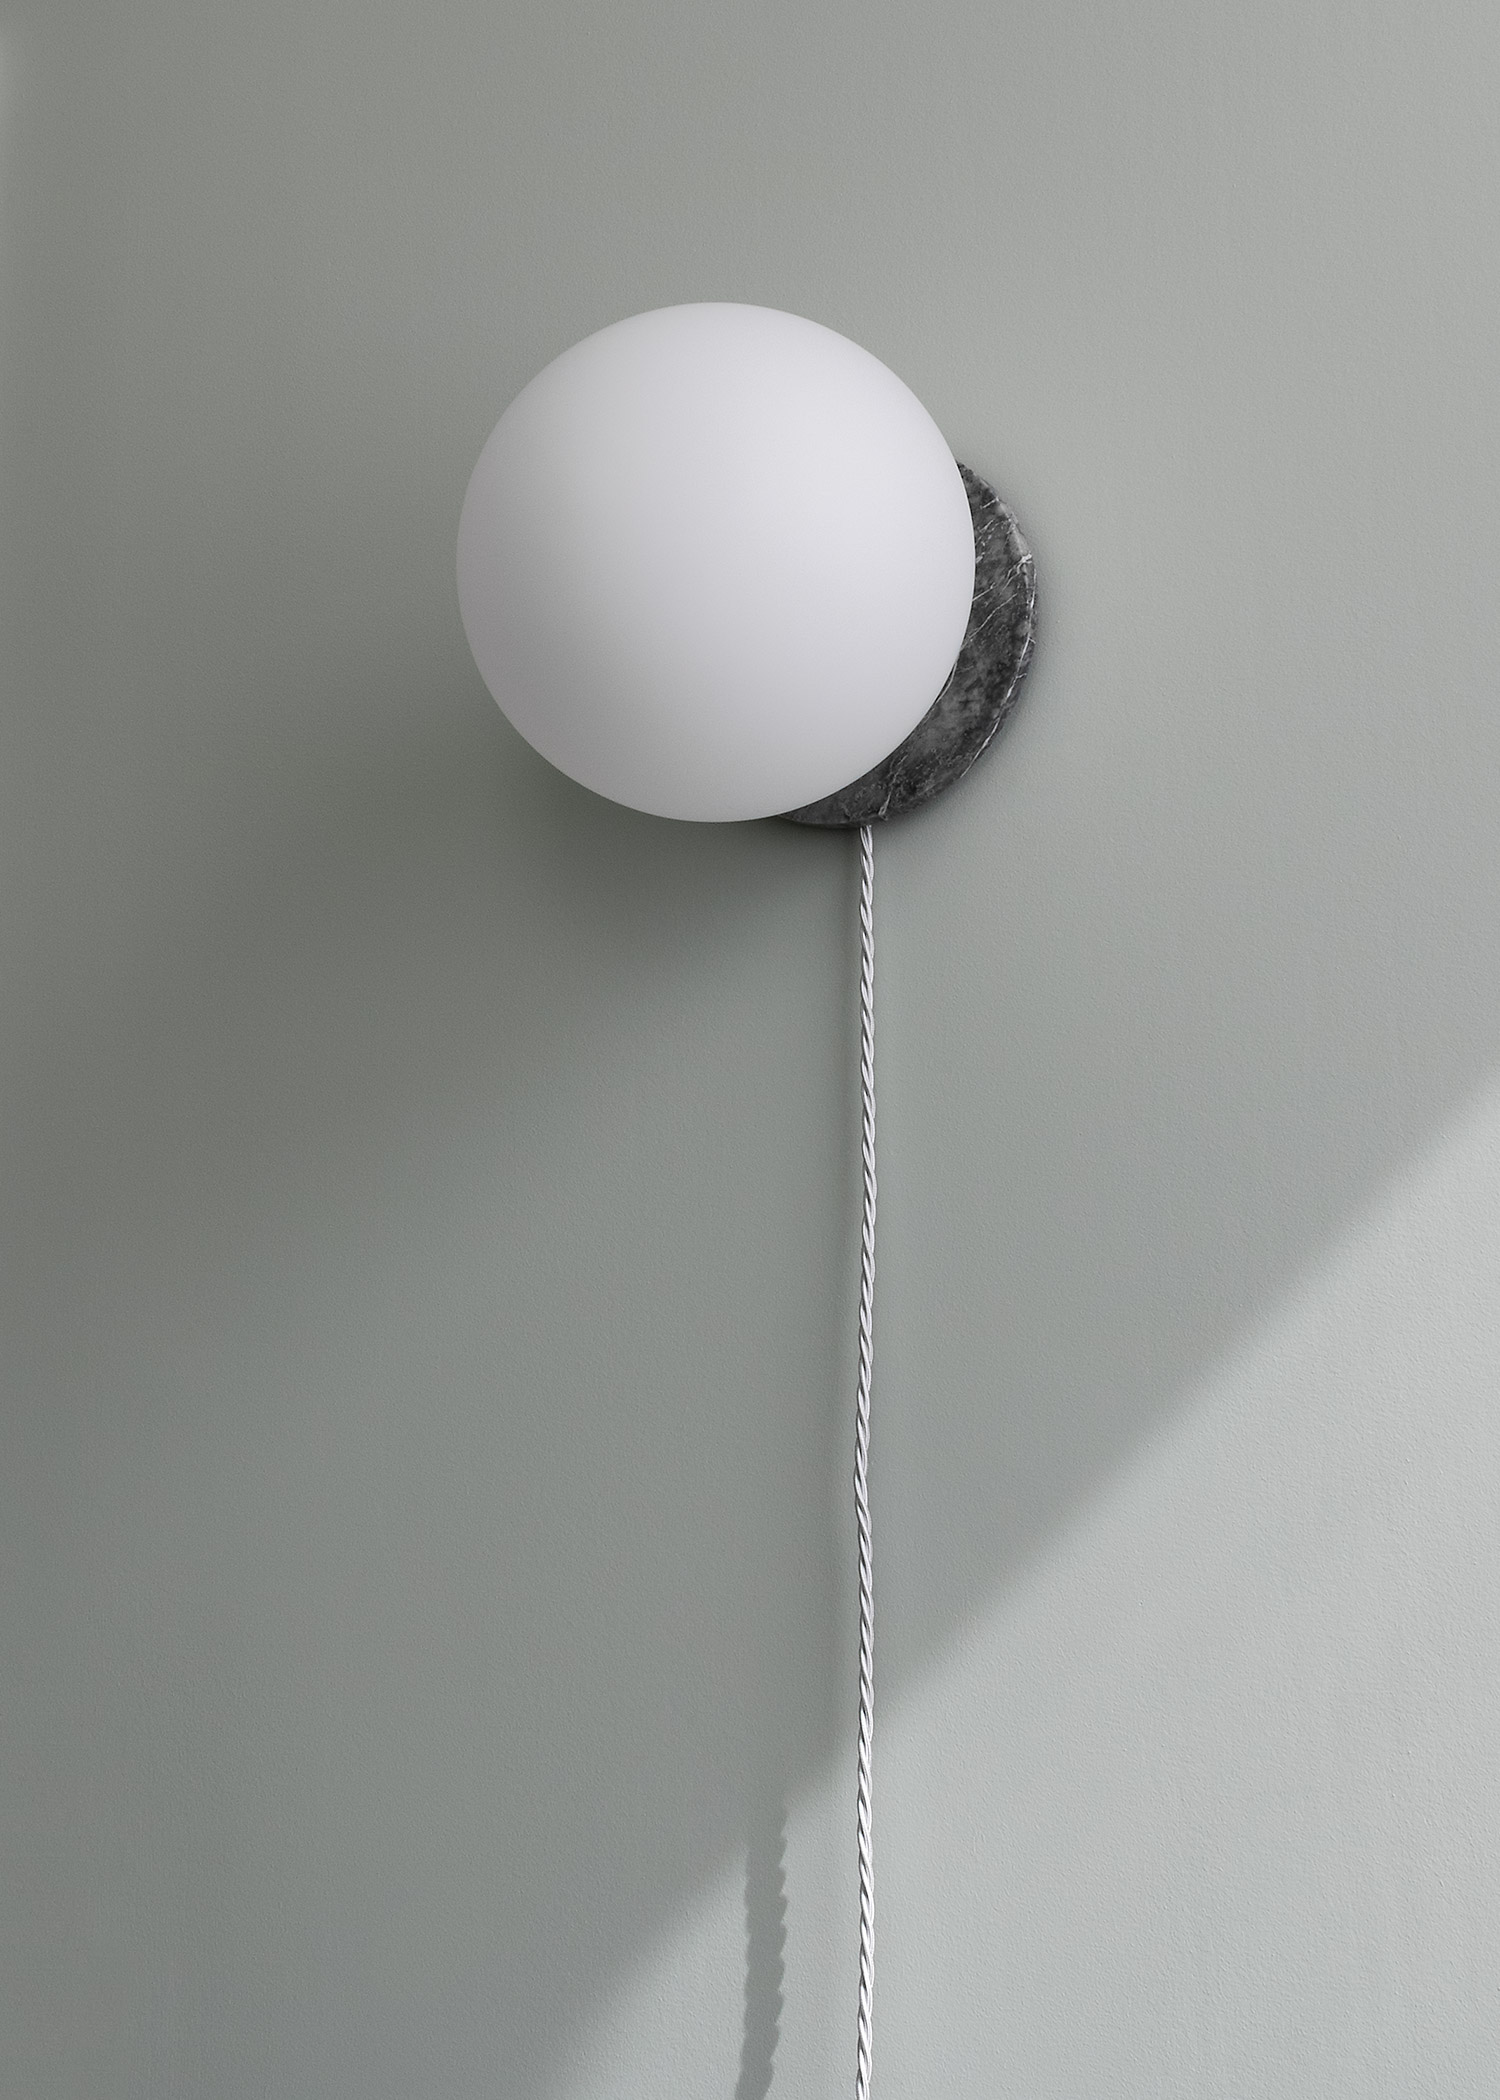 Wall light with grey marble base, white globe and fabric cord